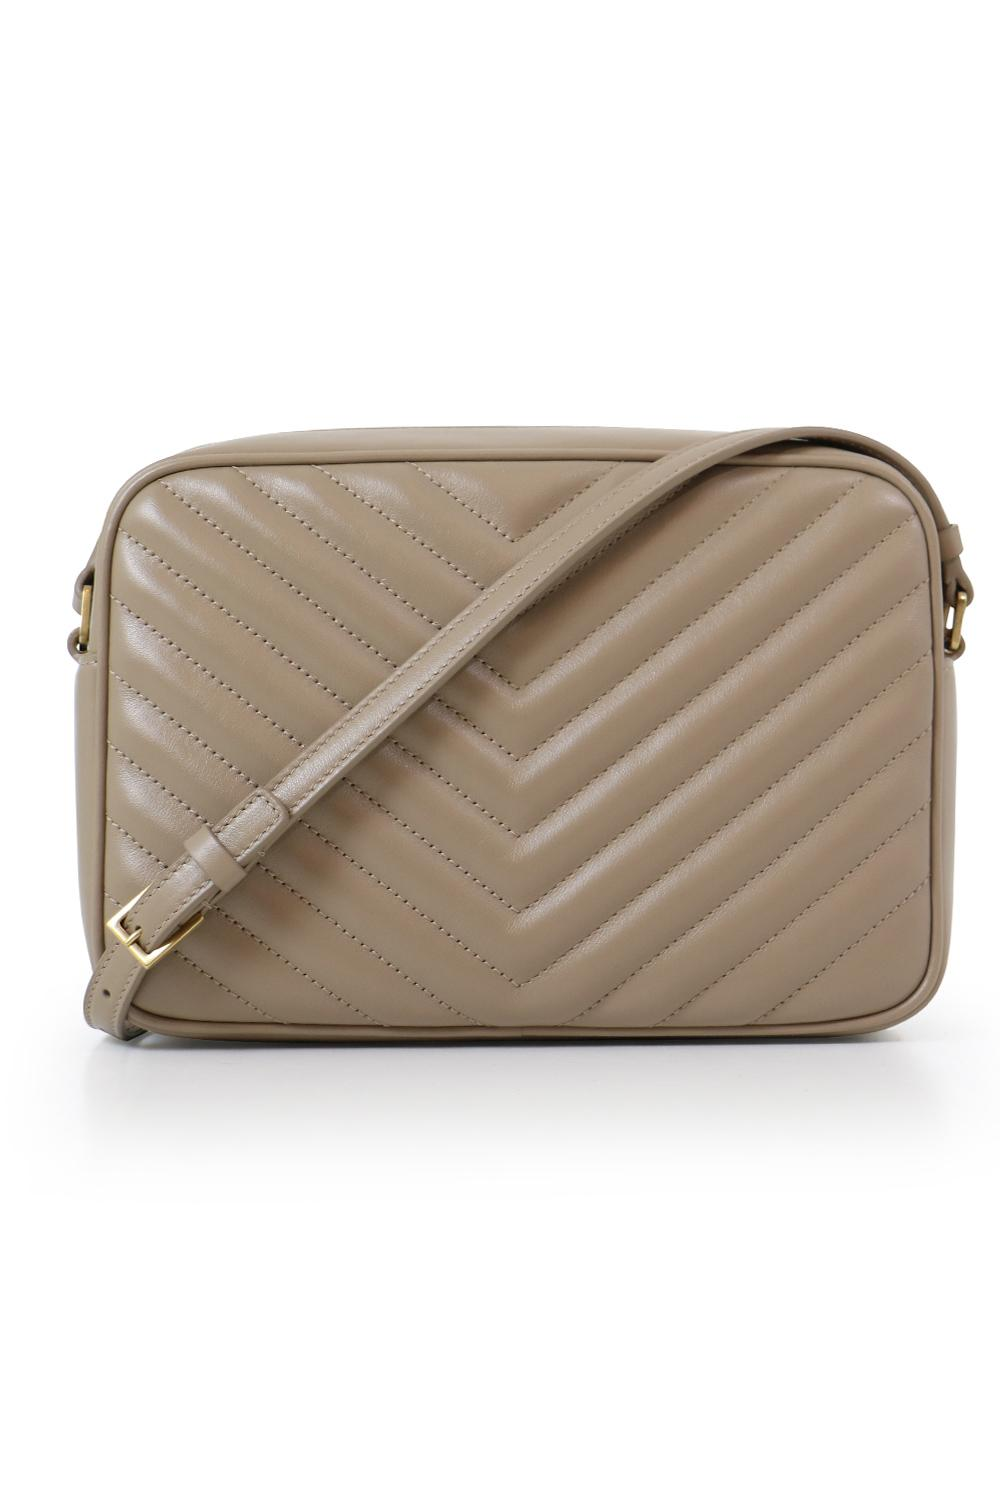 Saint Laurent Leather Lou Quilted Camera Bag Dusty Grey